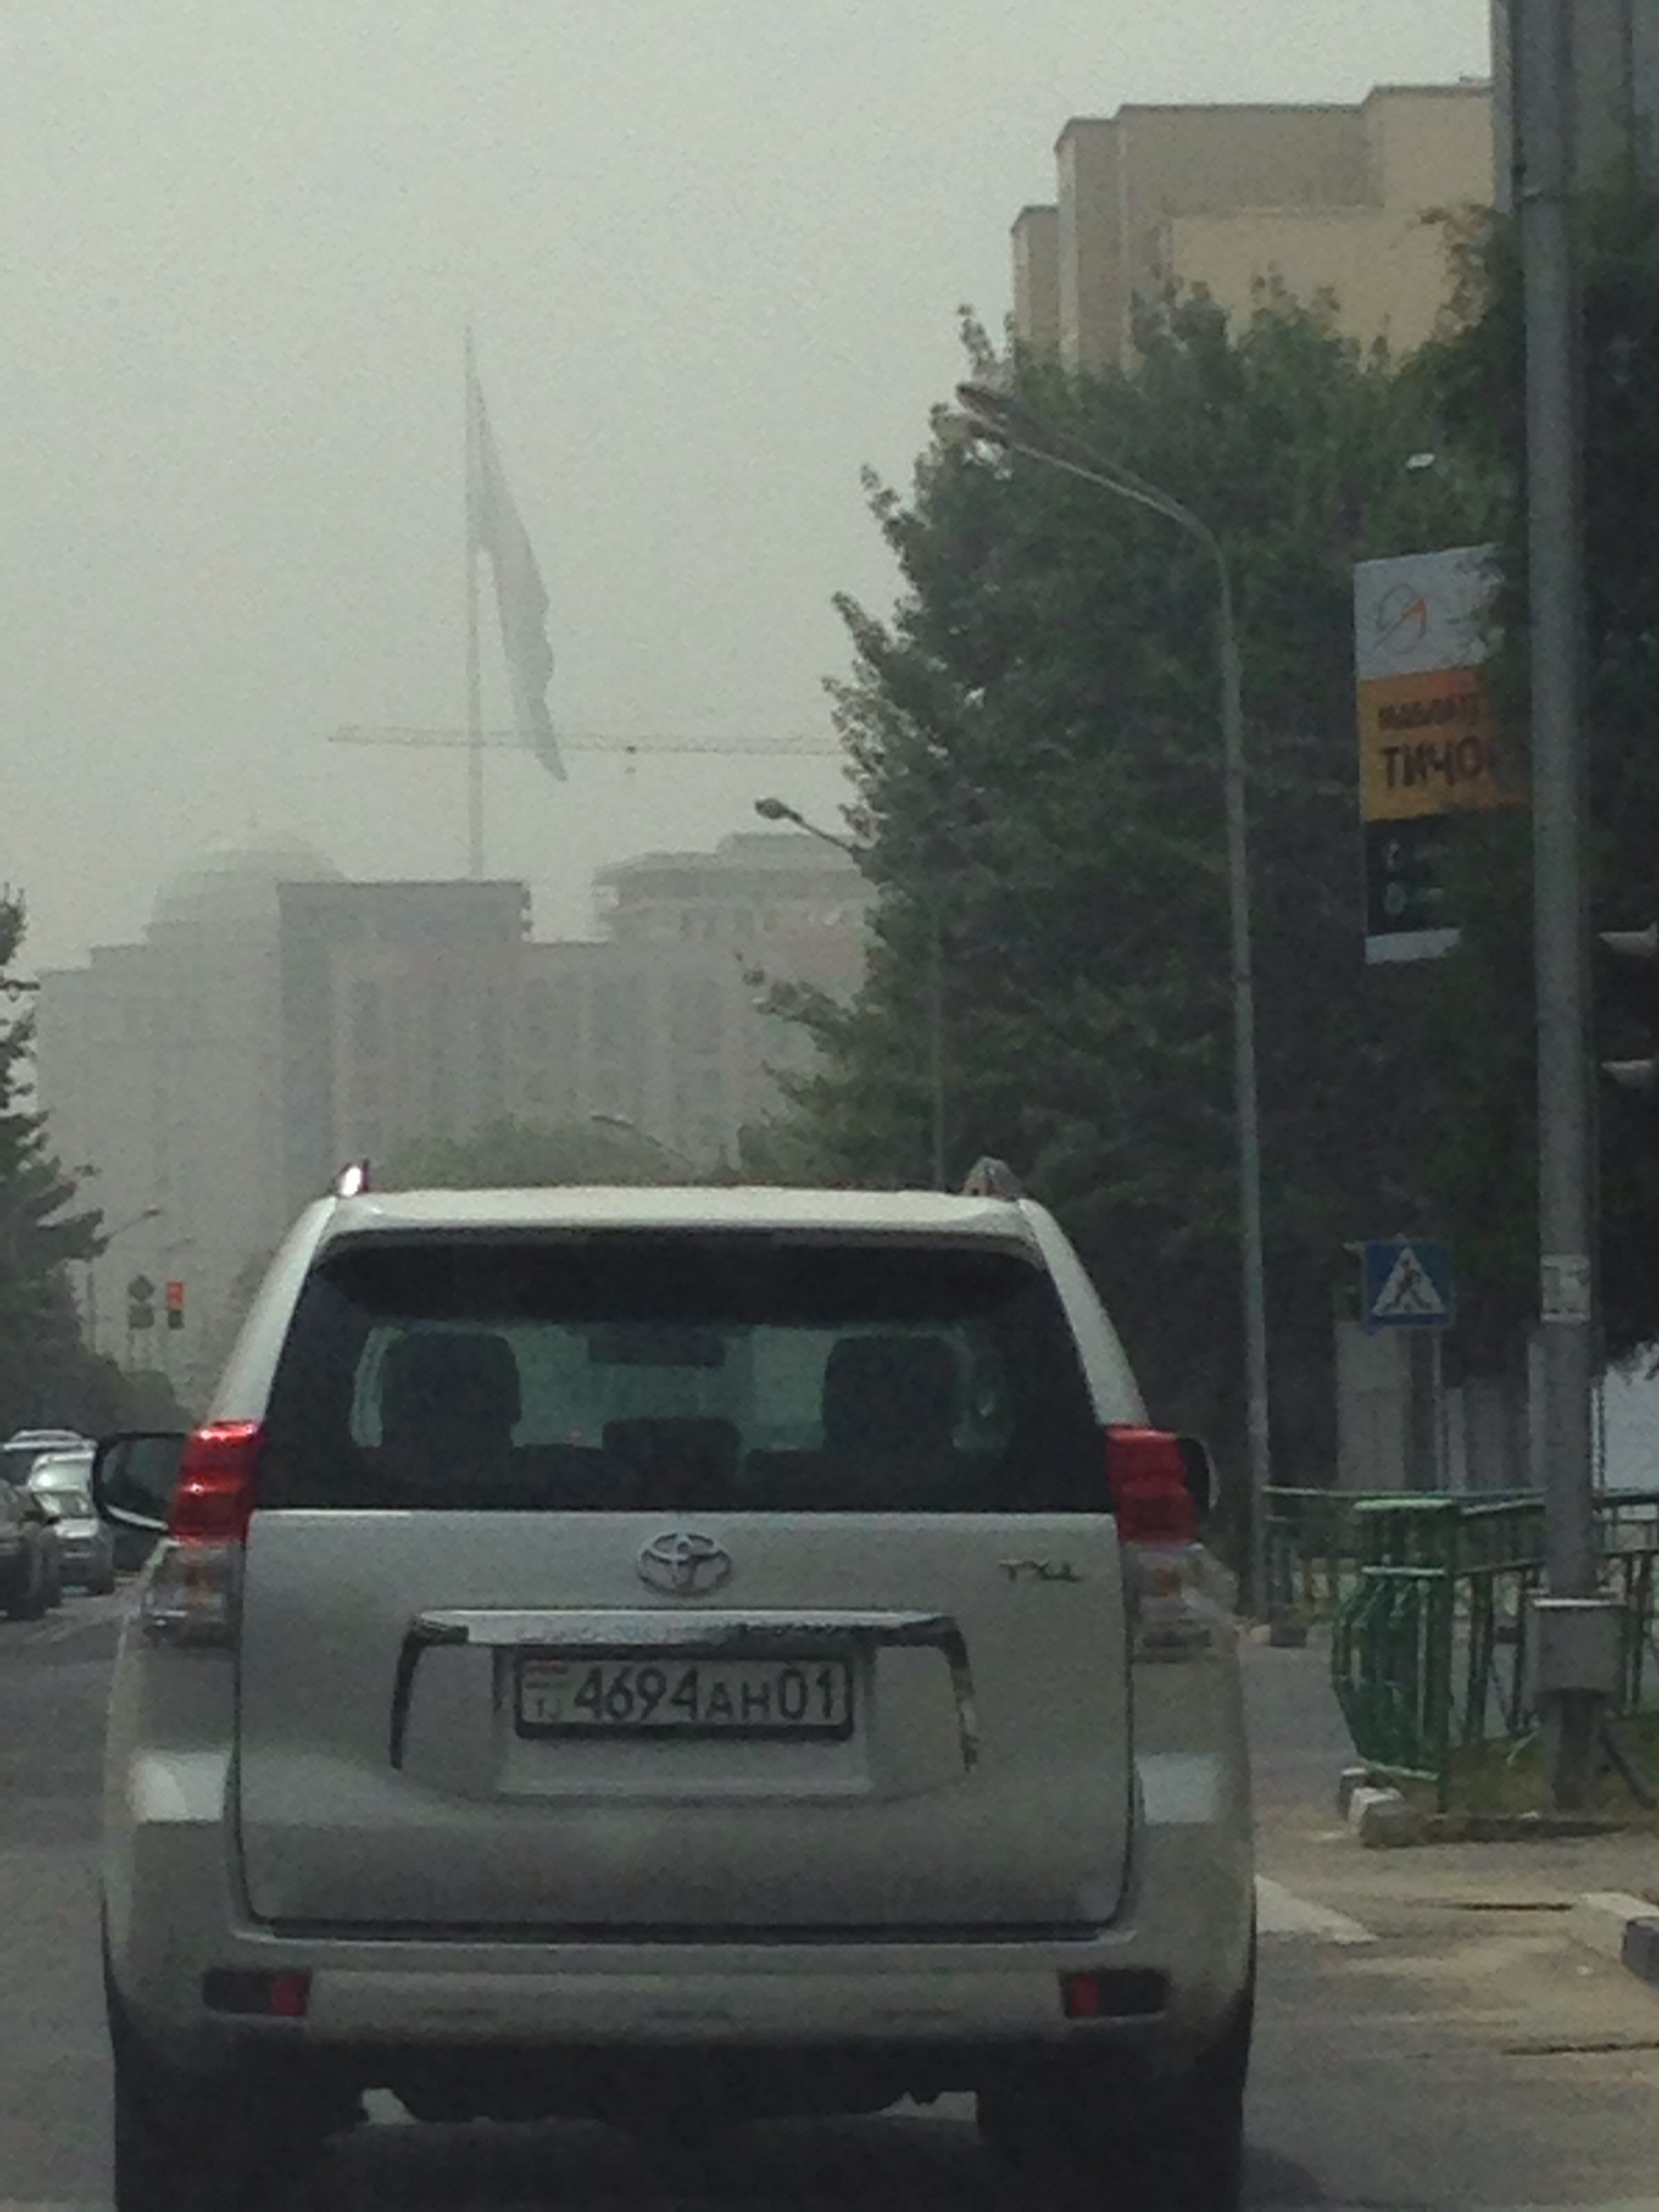 Dust in the air - ignore the image quality - snapped from the car at a red light. In the distance, you can barely make out the world's second largest flagpole.